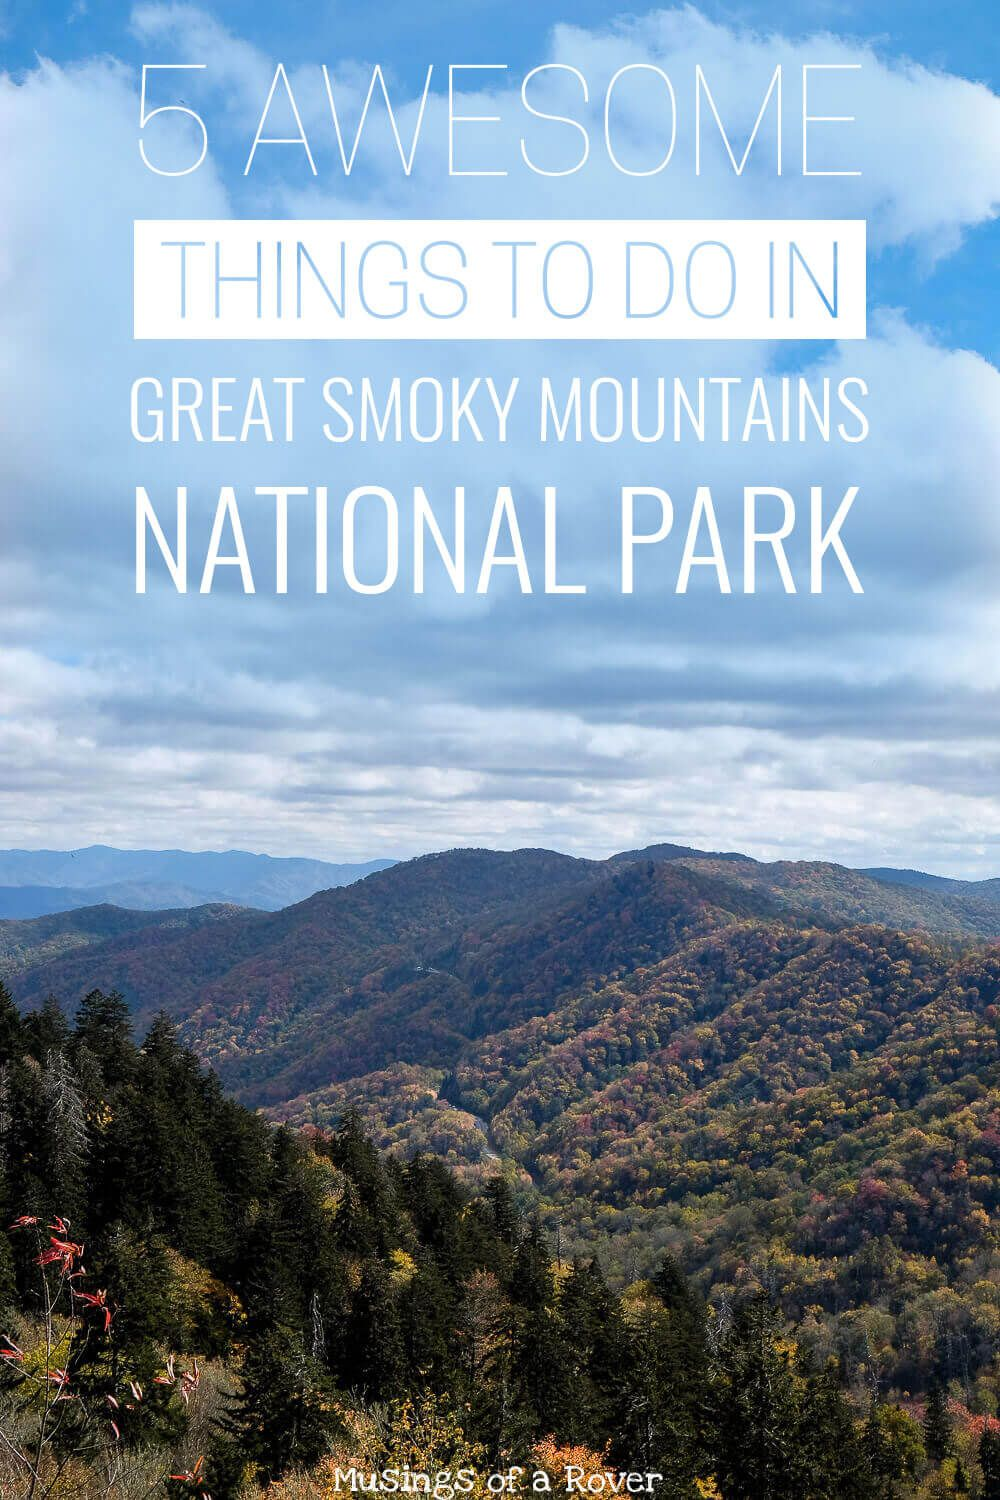 Are you headed to the Great Smoky Mountains National Park? Here are 5 awesome things to do in the Smoky Mountains. Includes waterfalls, hikes, viewpoints, drives, and more! The Smokies is a huge park and you want to make sure to base yourself near the action. Find out where to go and what to do before you get to the park!